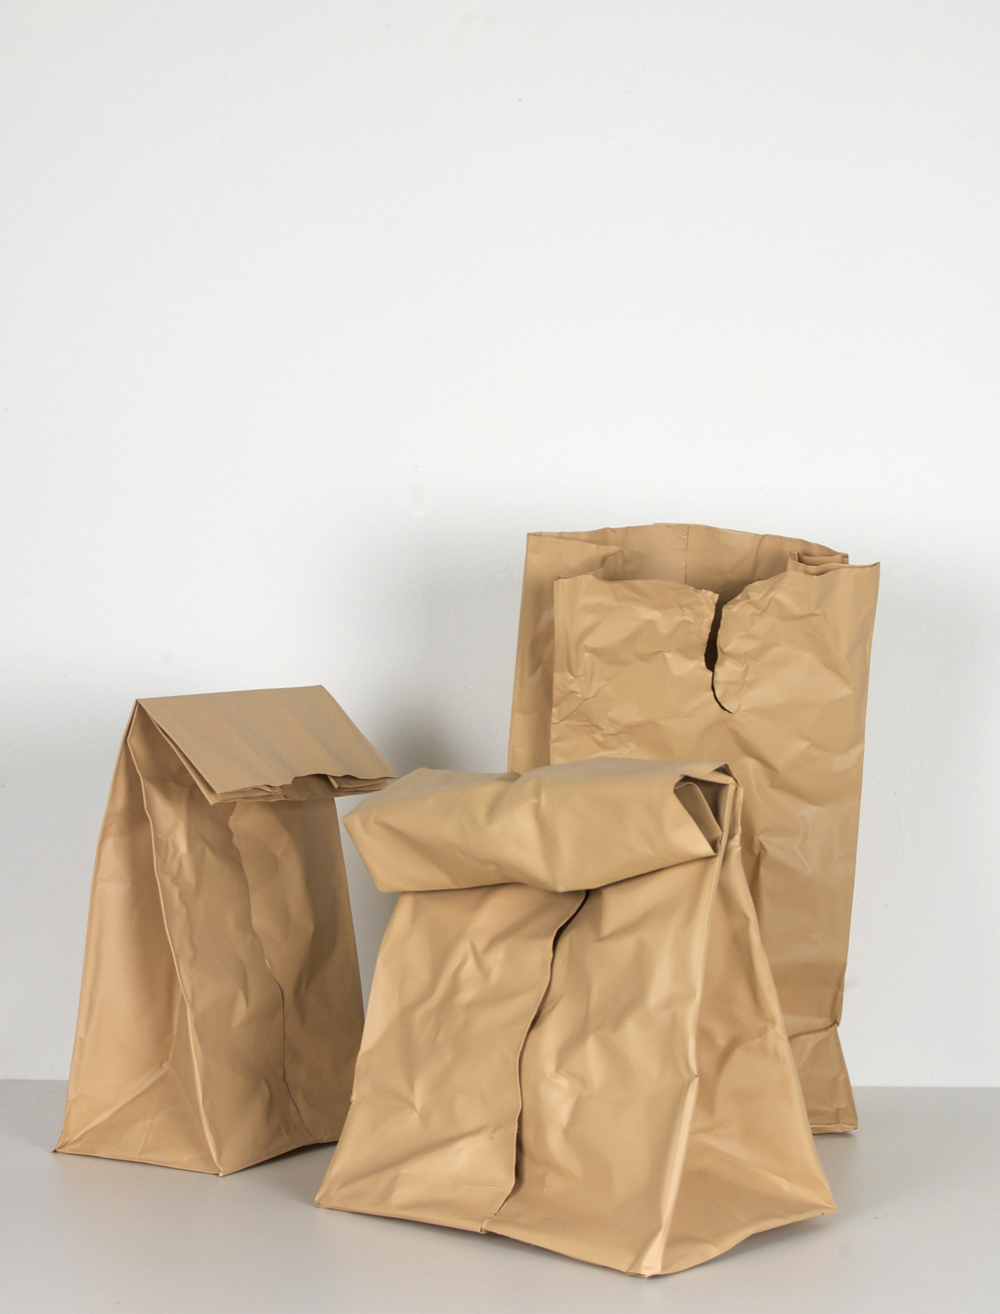 Beer Bag Series 2, 2014, Acrylic on copper (Select Installation)